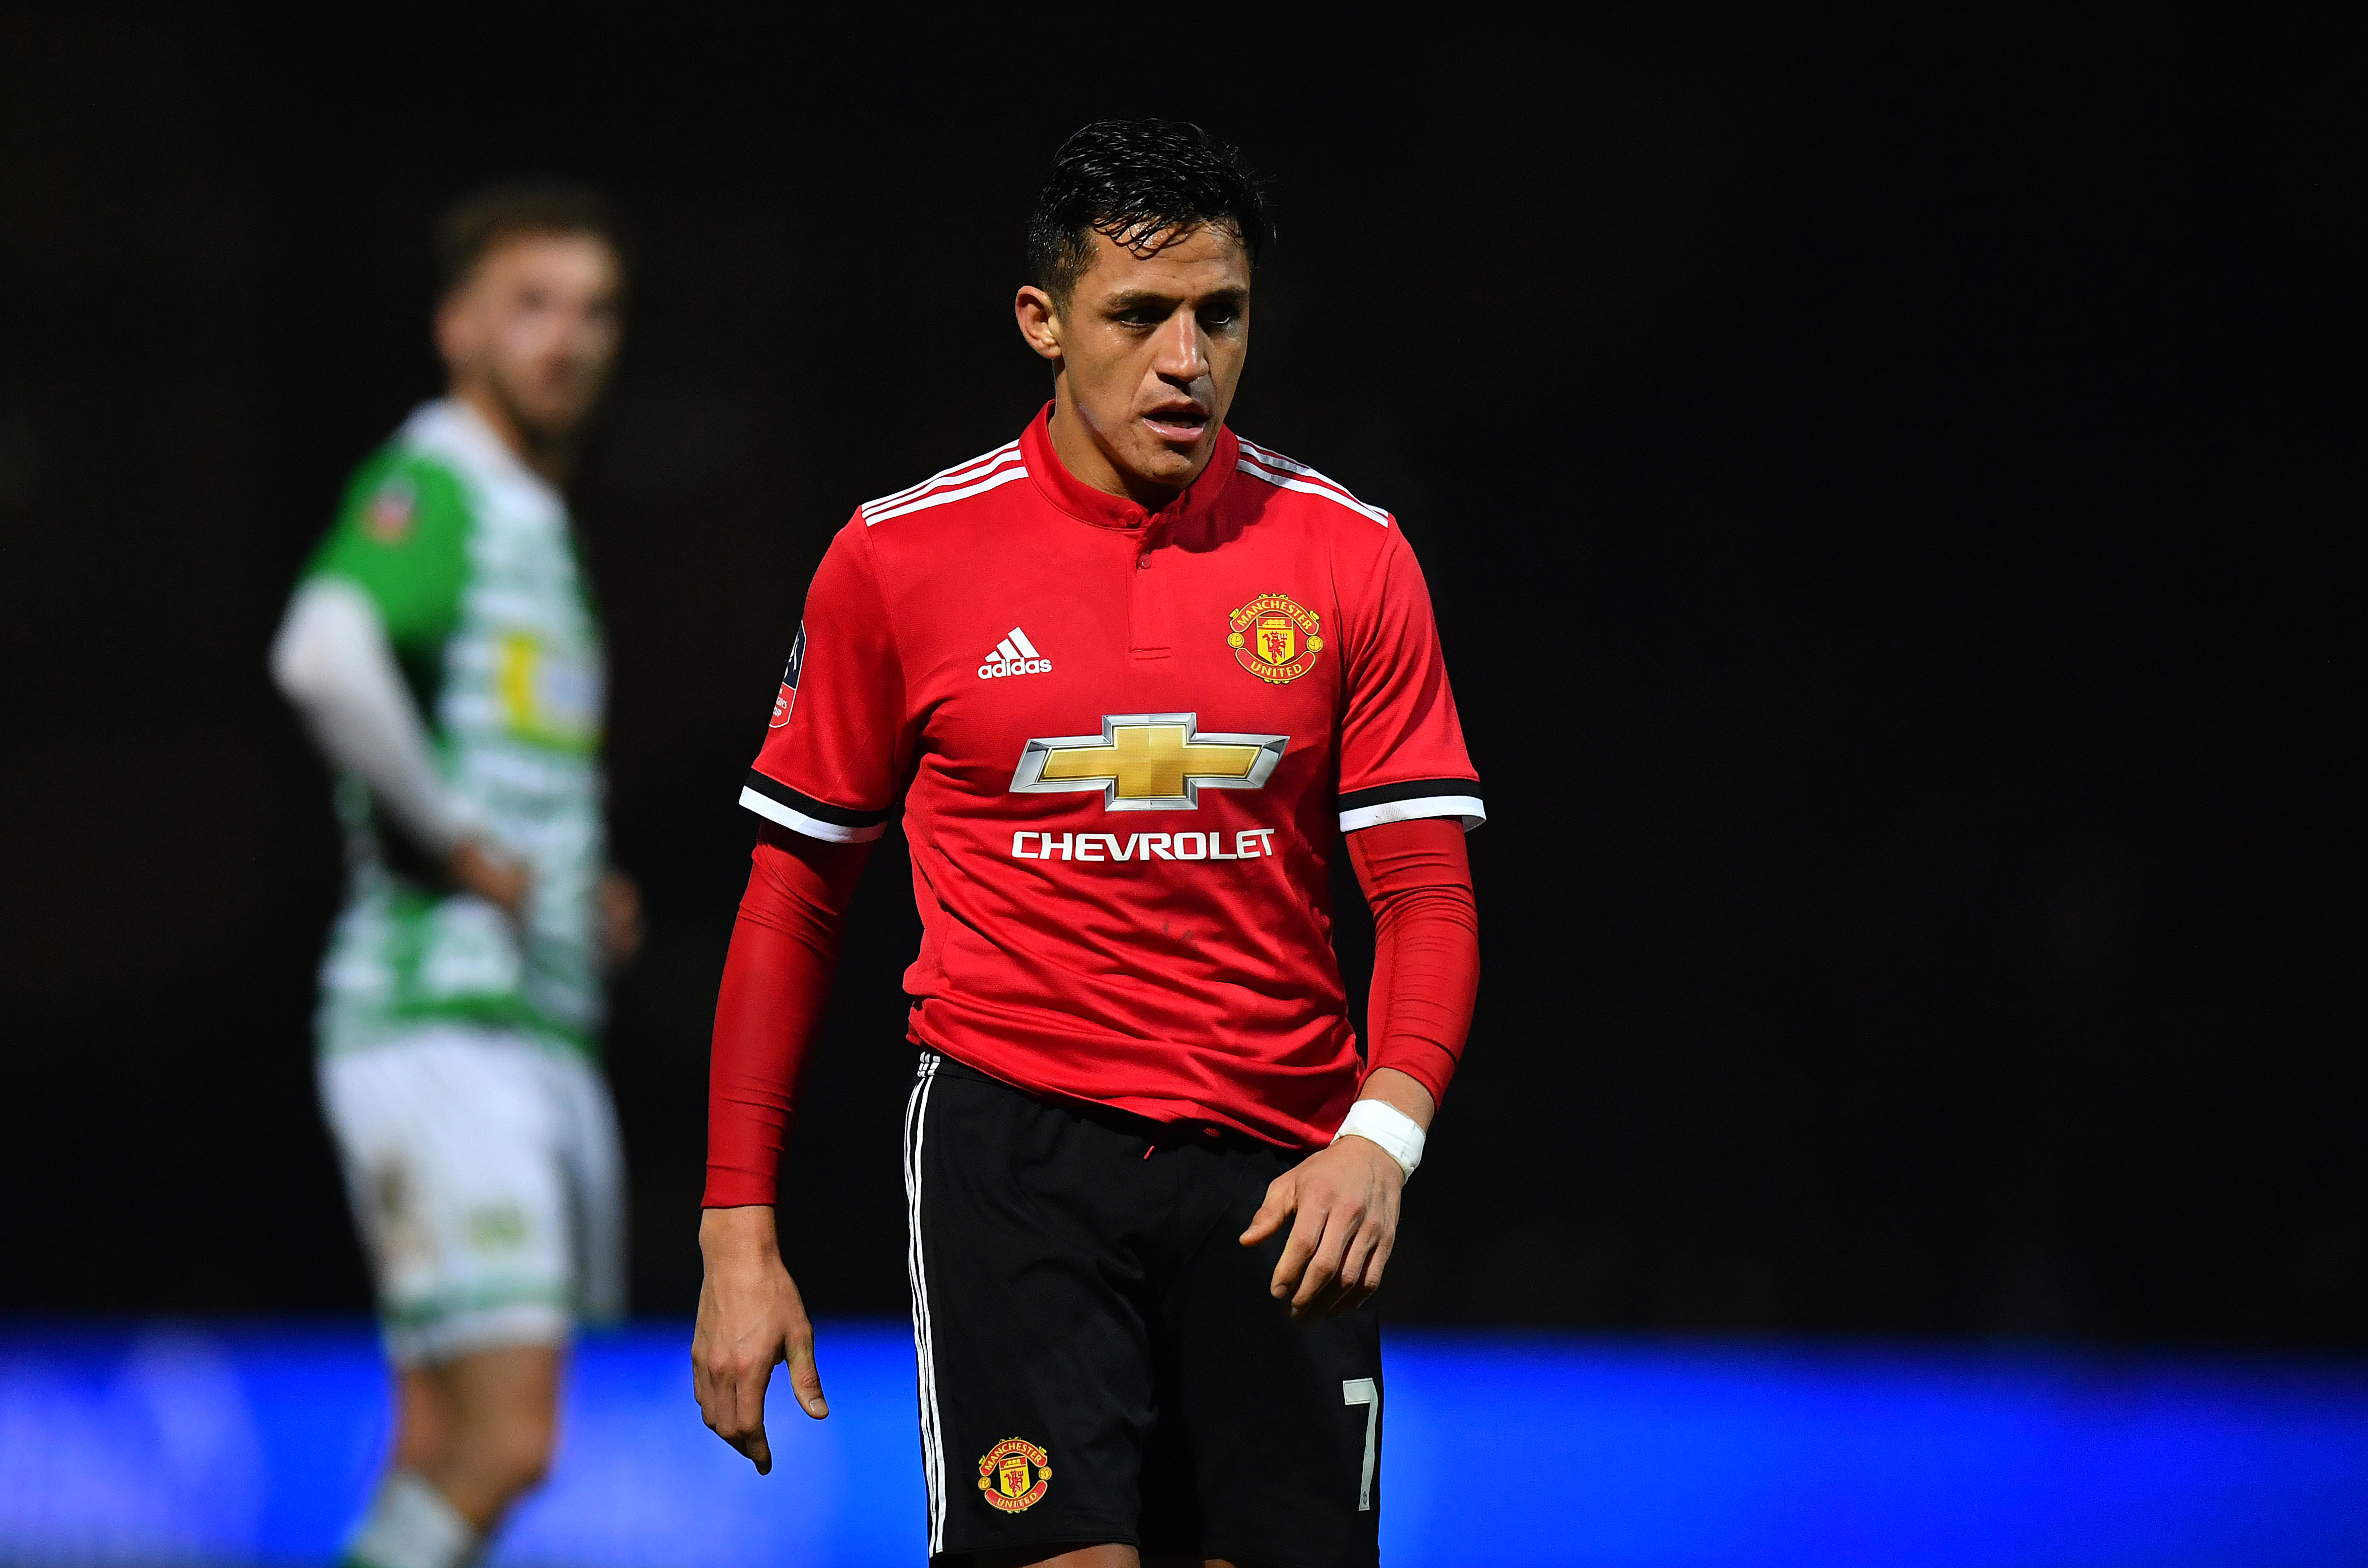 Alexis Sanchez on debut at Yeovil Town.